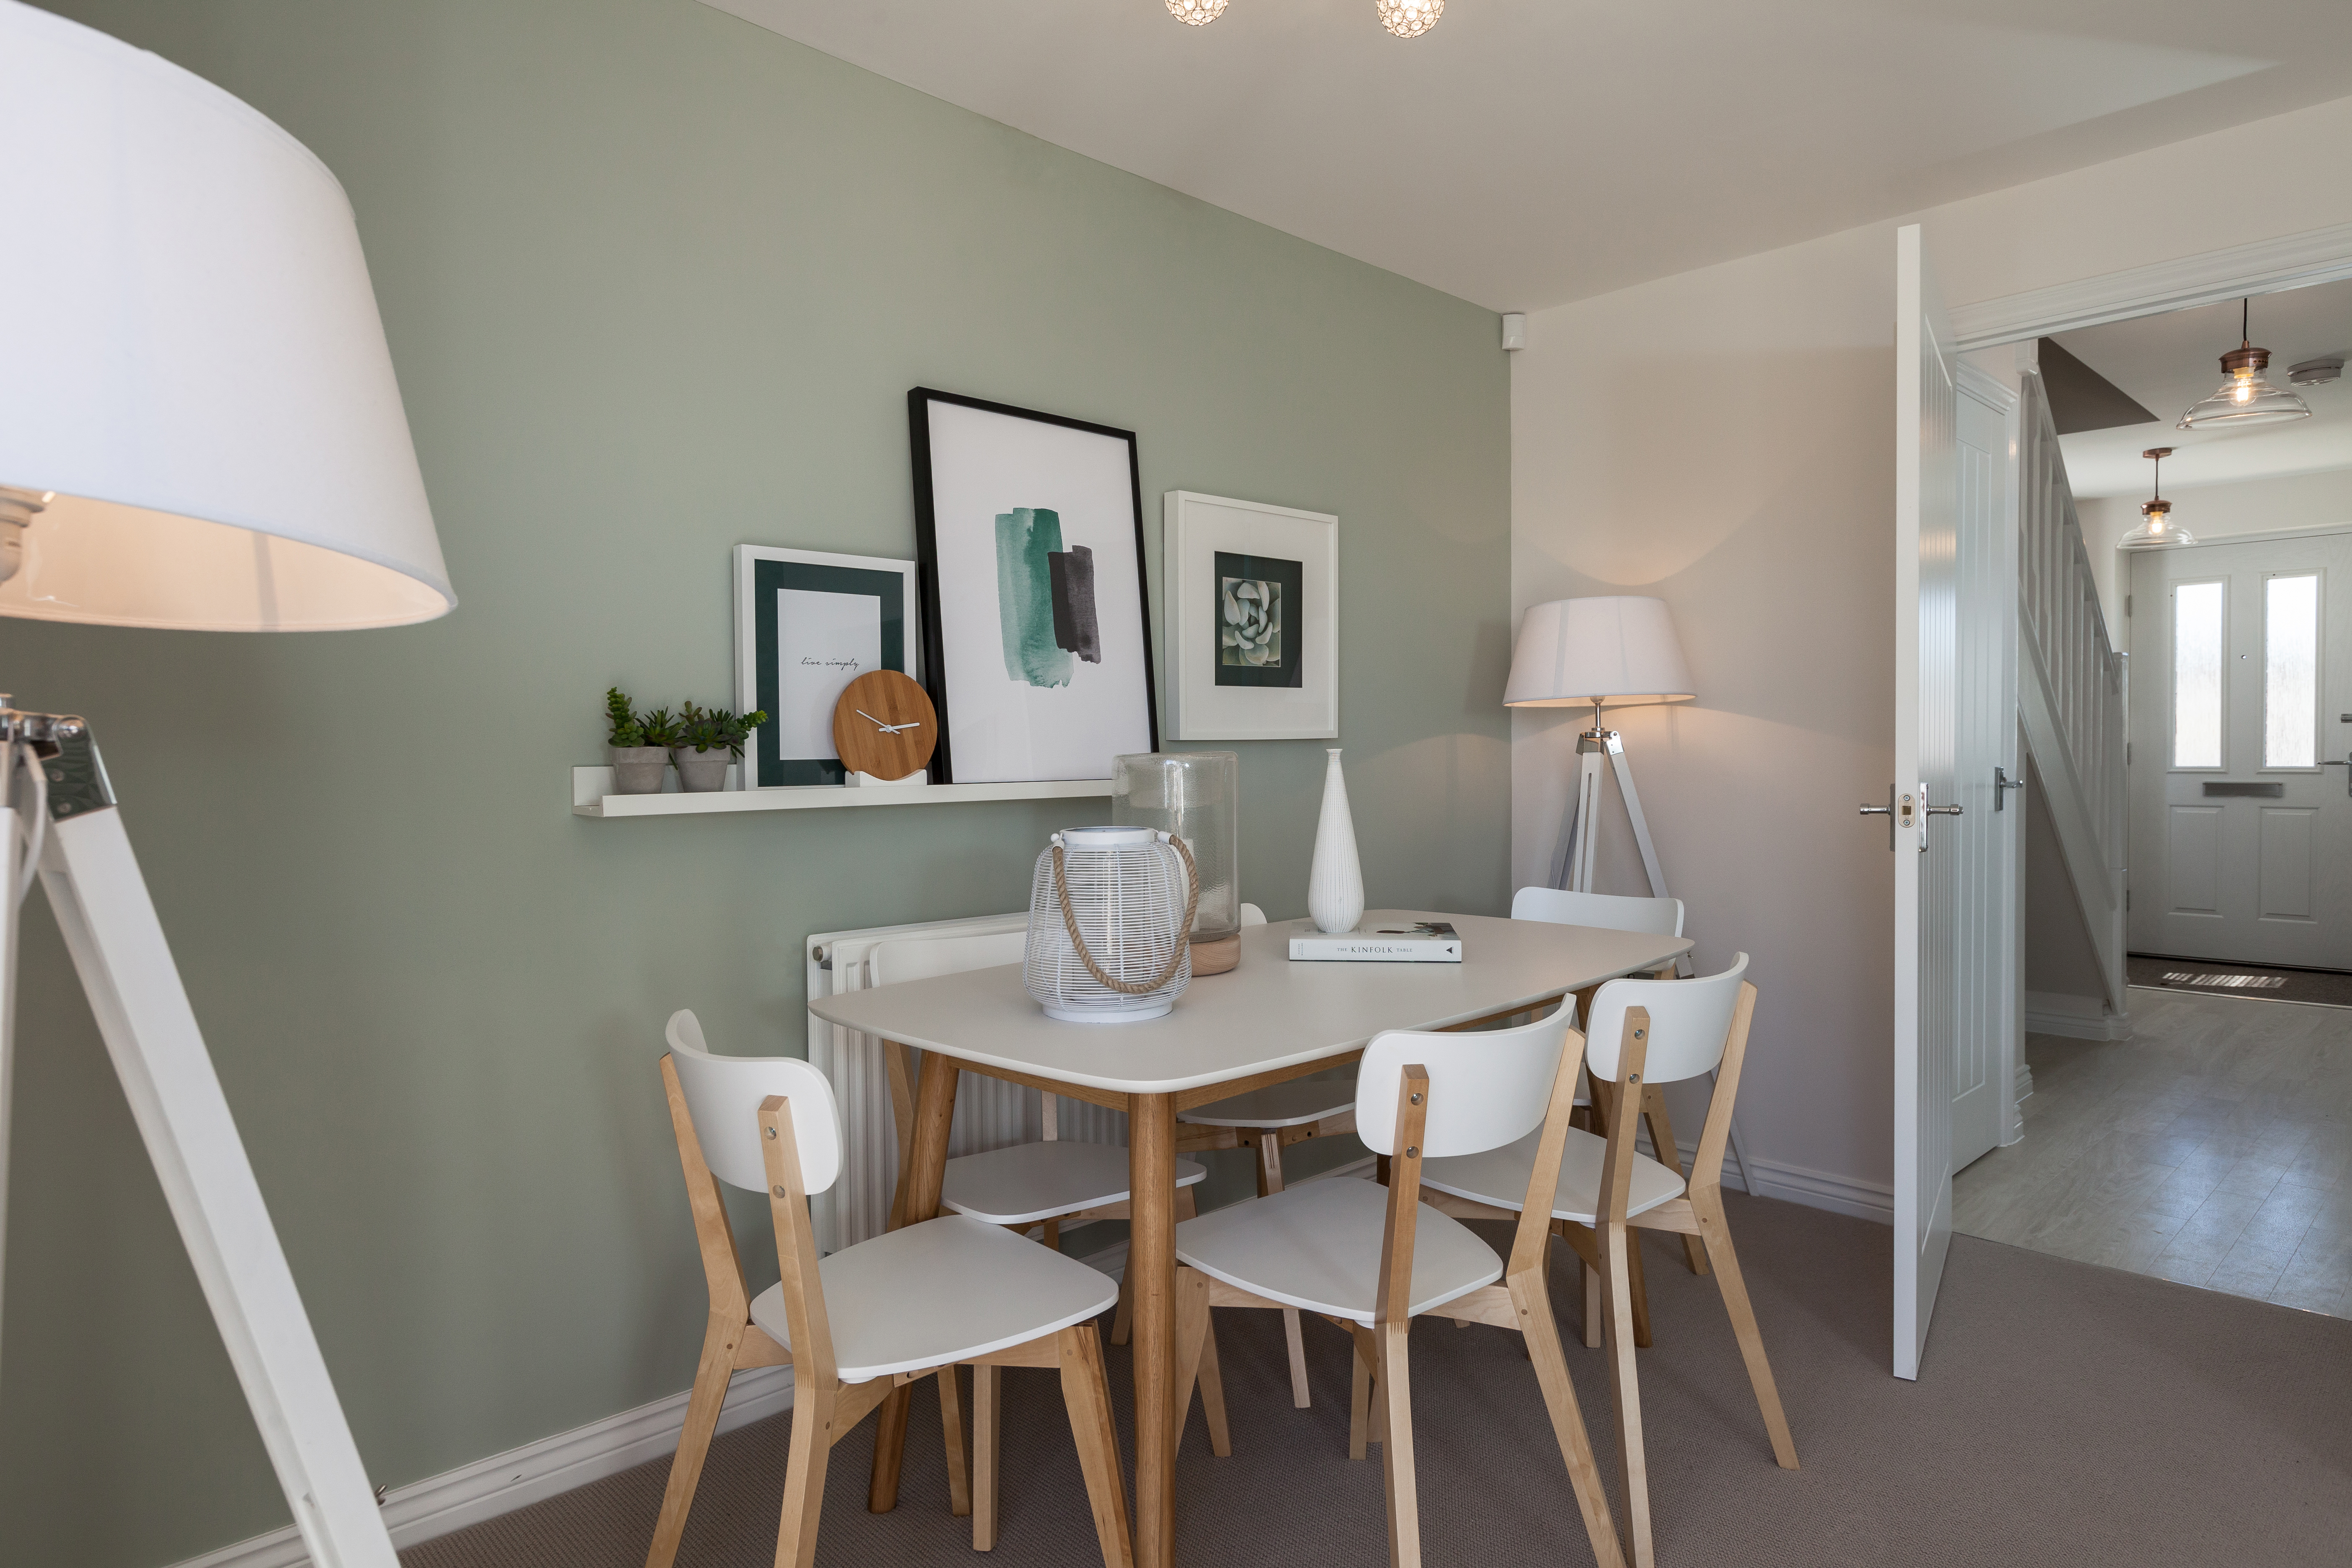 TW NM_Pastures New_Flatford_Dining